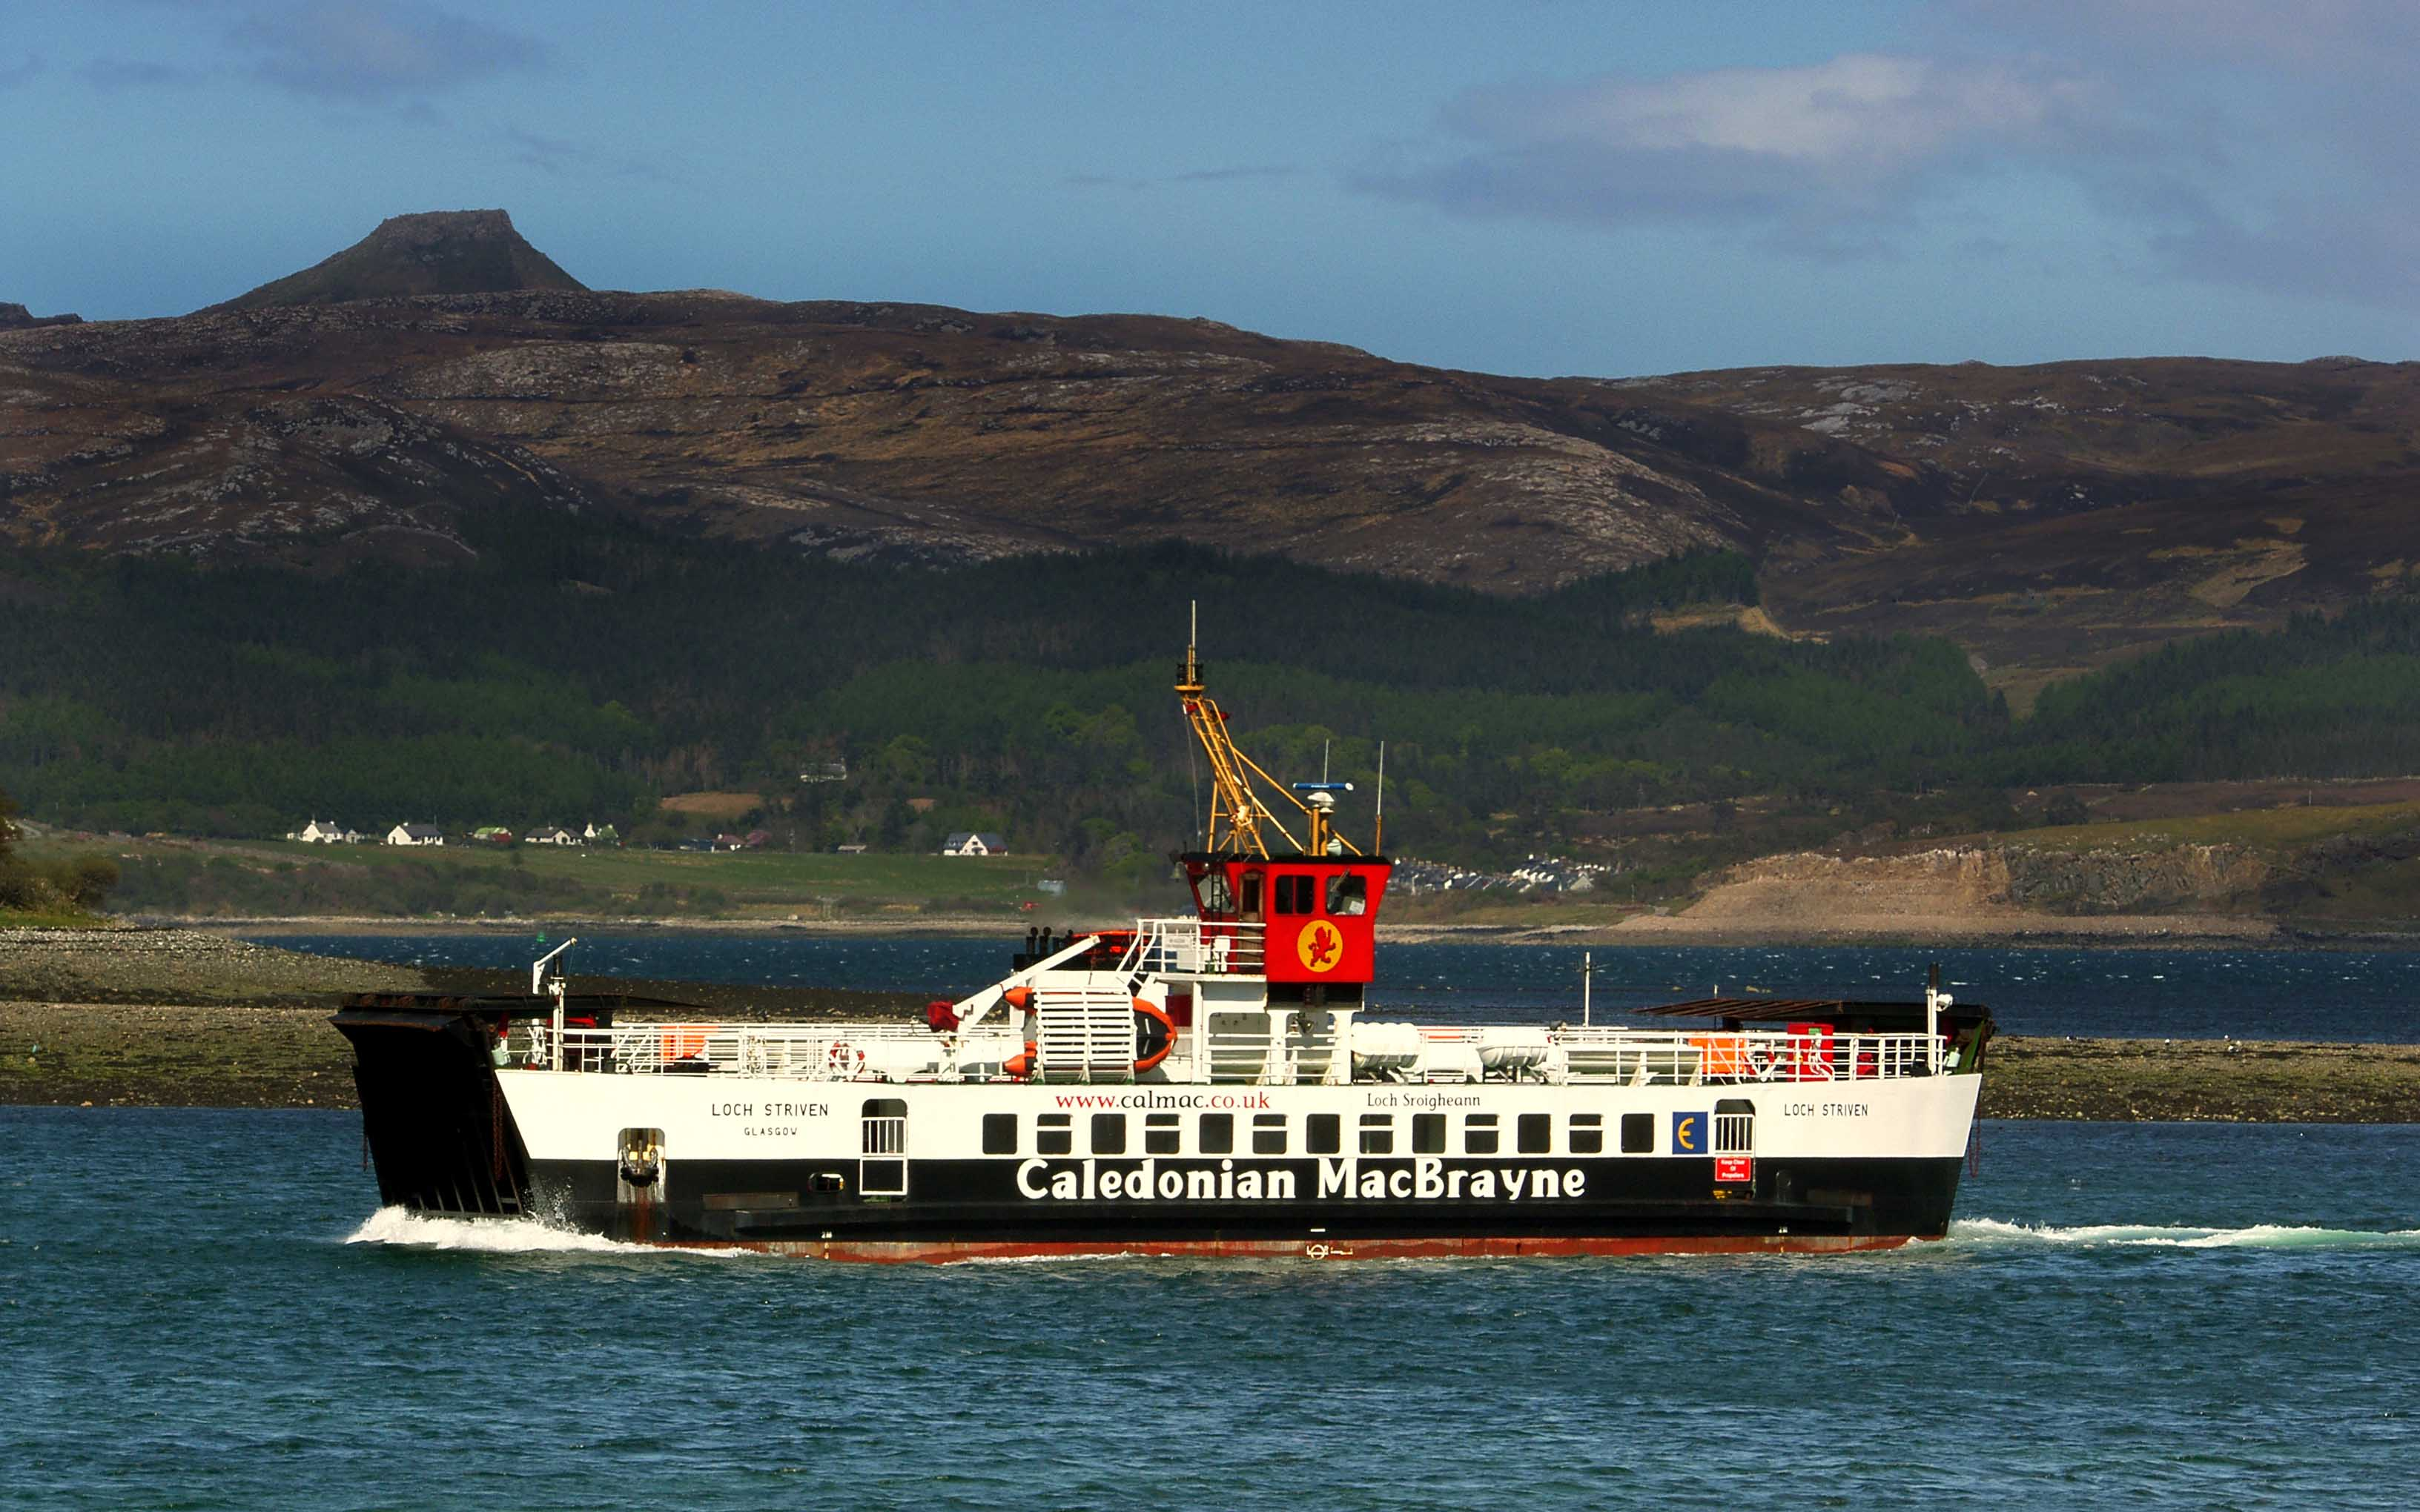 Loch Striven approaching Sconser (Ships of CalMac)